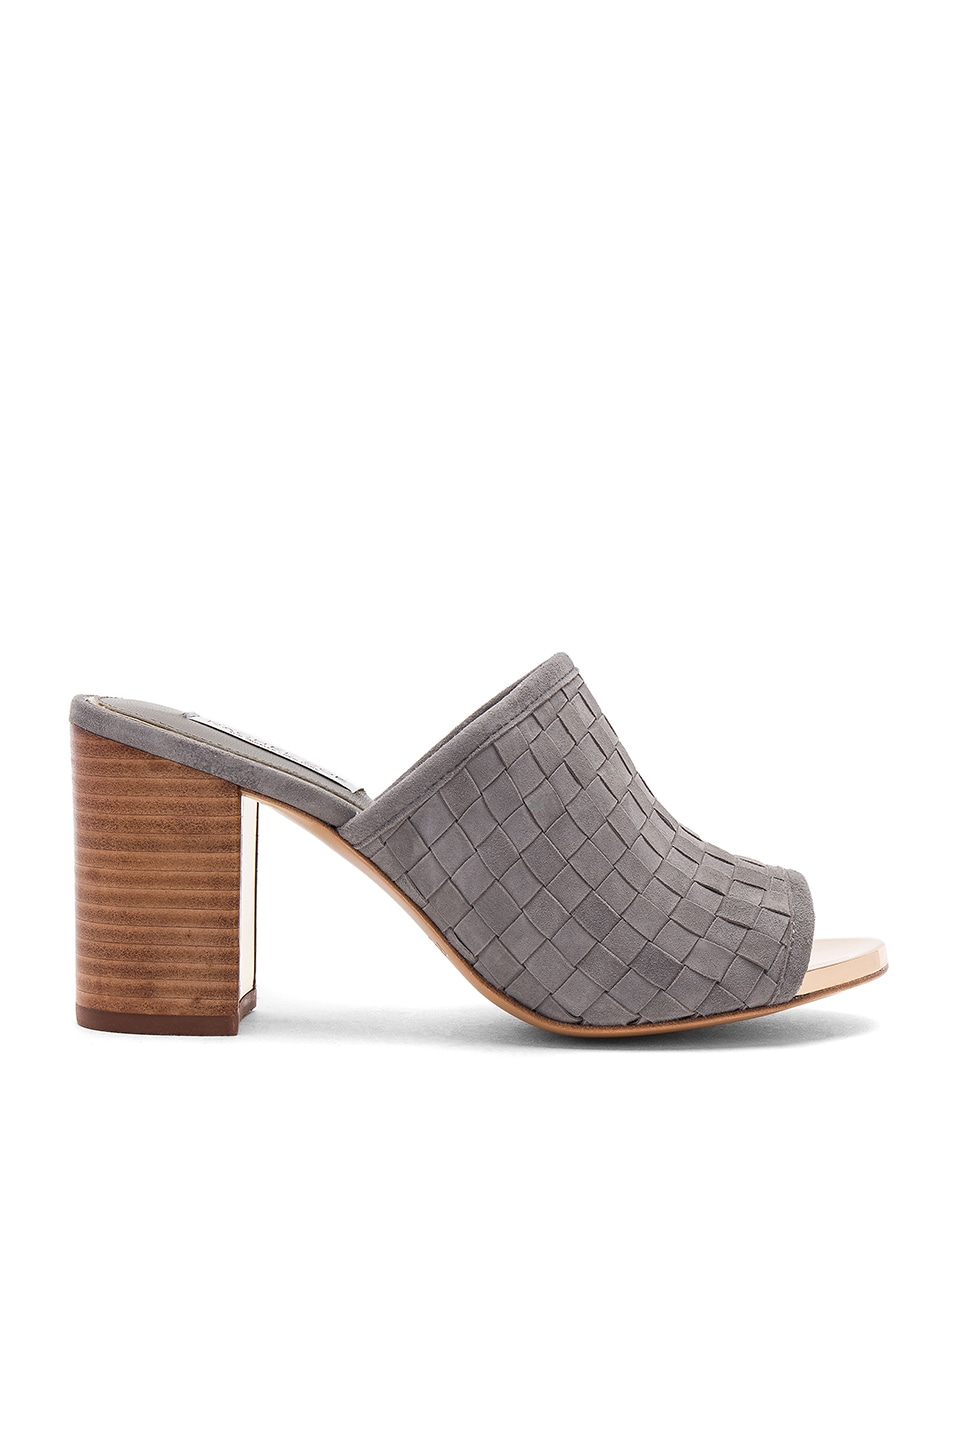 RACHEL ZOE Giordana Mule in Grey Kid Suede